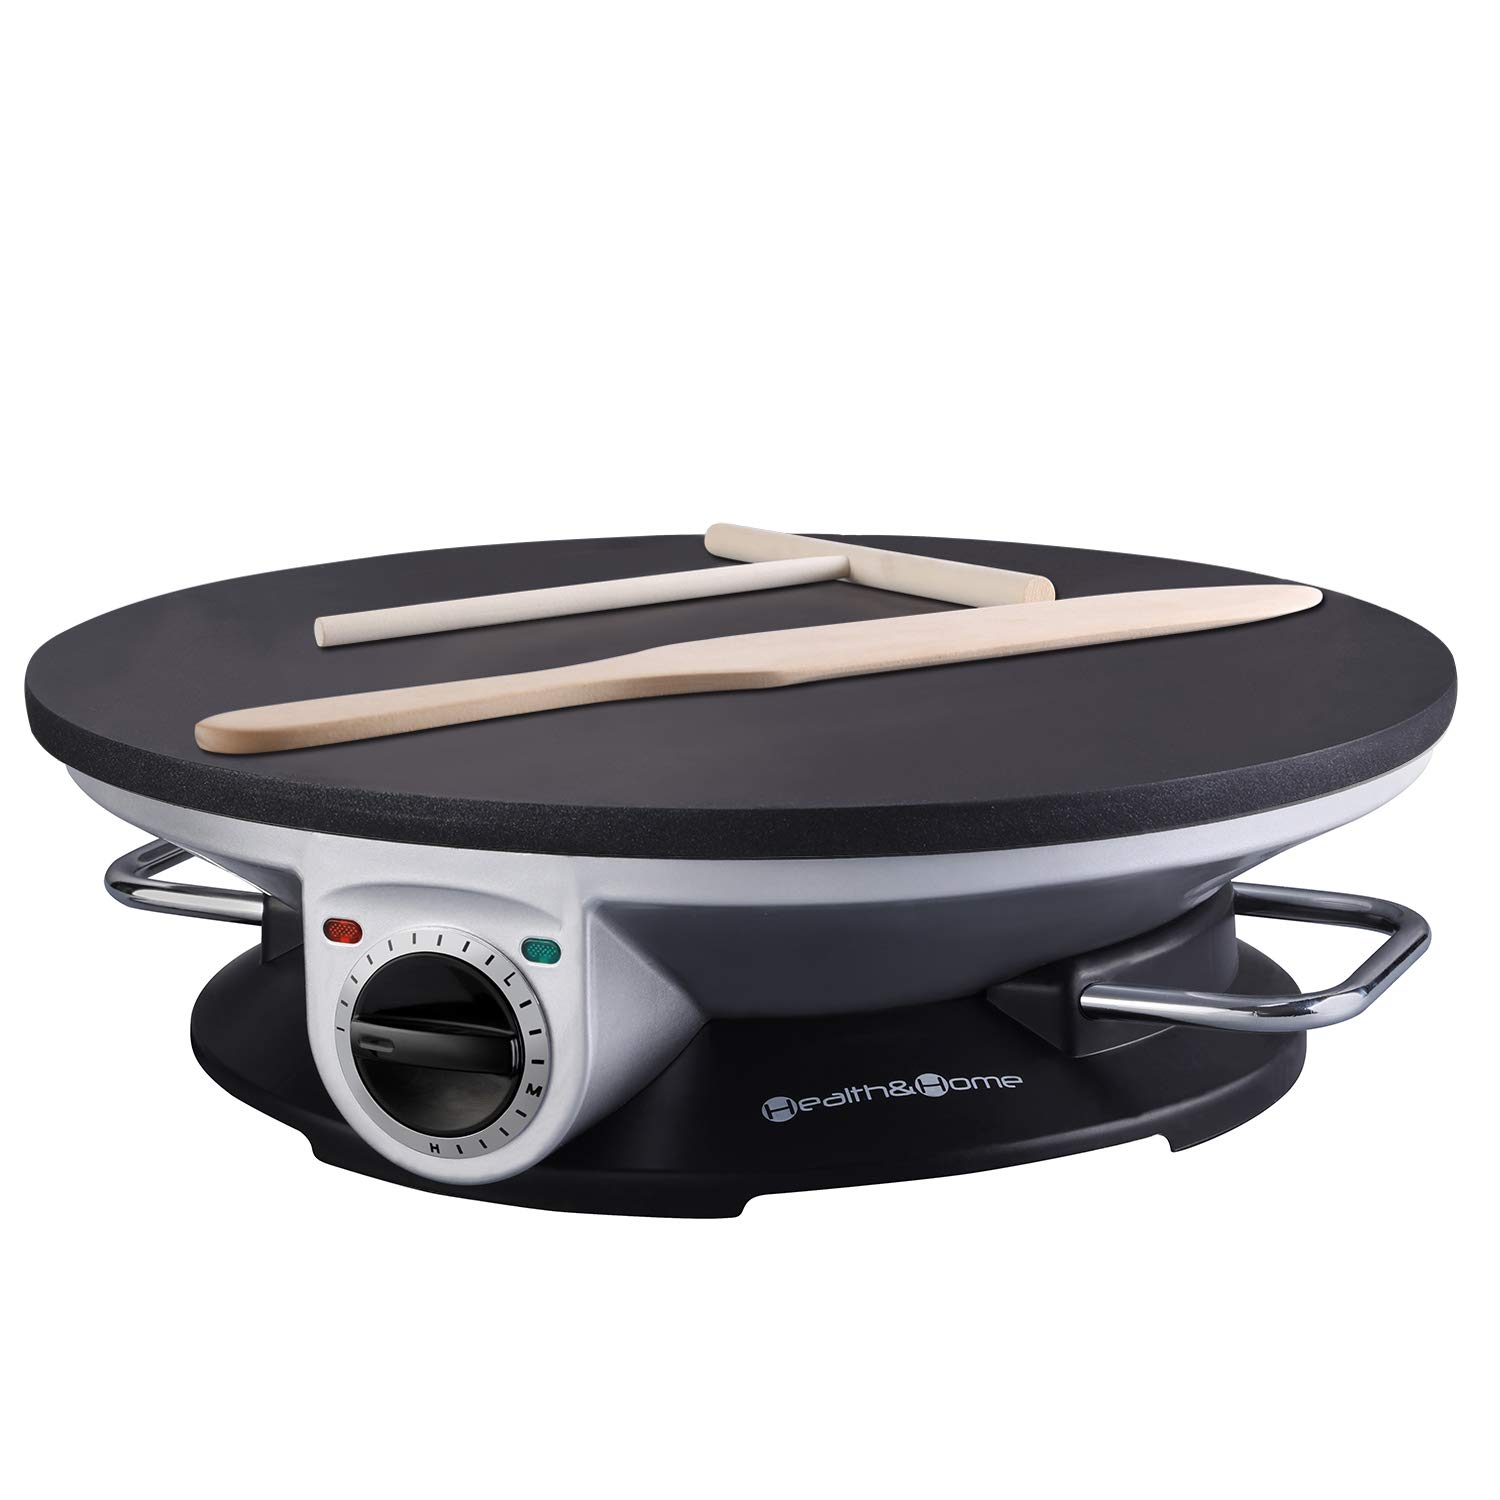 Health and Home No Edge Crepe Maker - 13 Inch Crepe Maker & Electric Griddle - Non-stick Pancake Maker- Waffle Maker- Crepe Pan by Health and Home   B017I5K26G